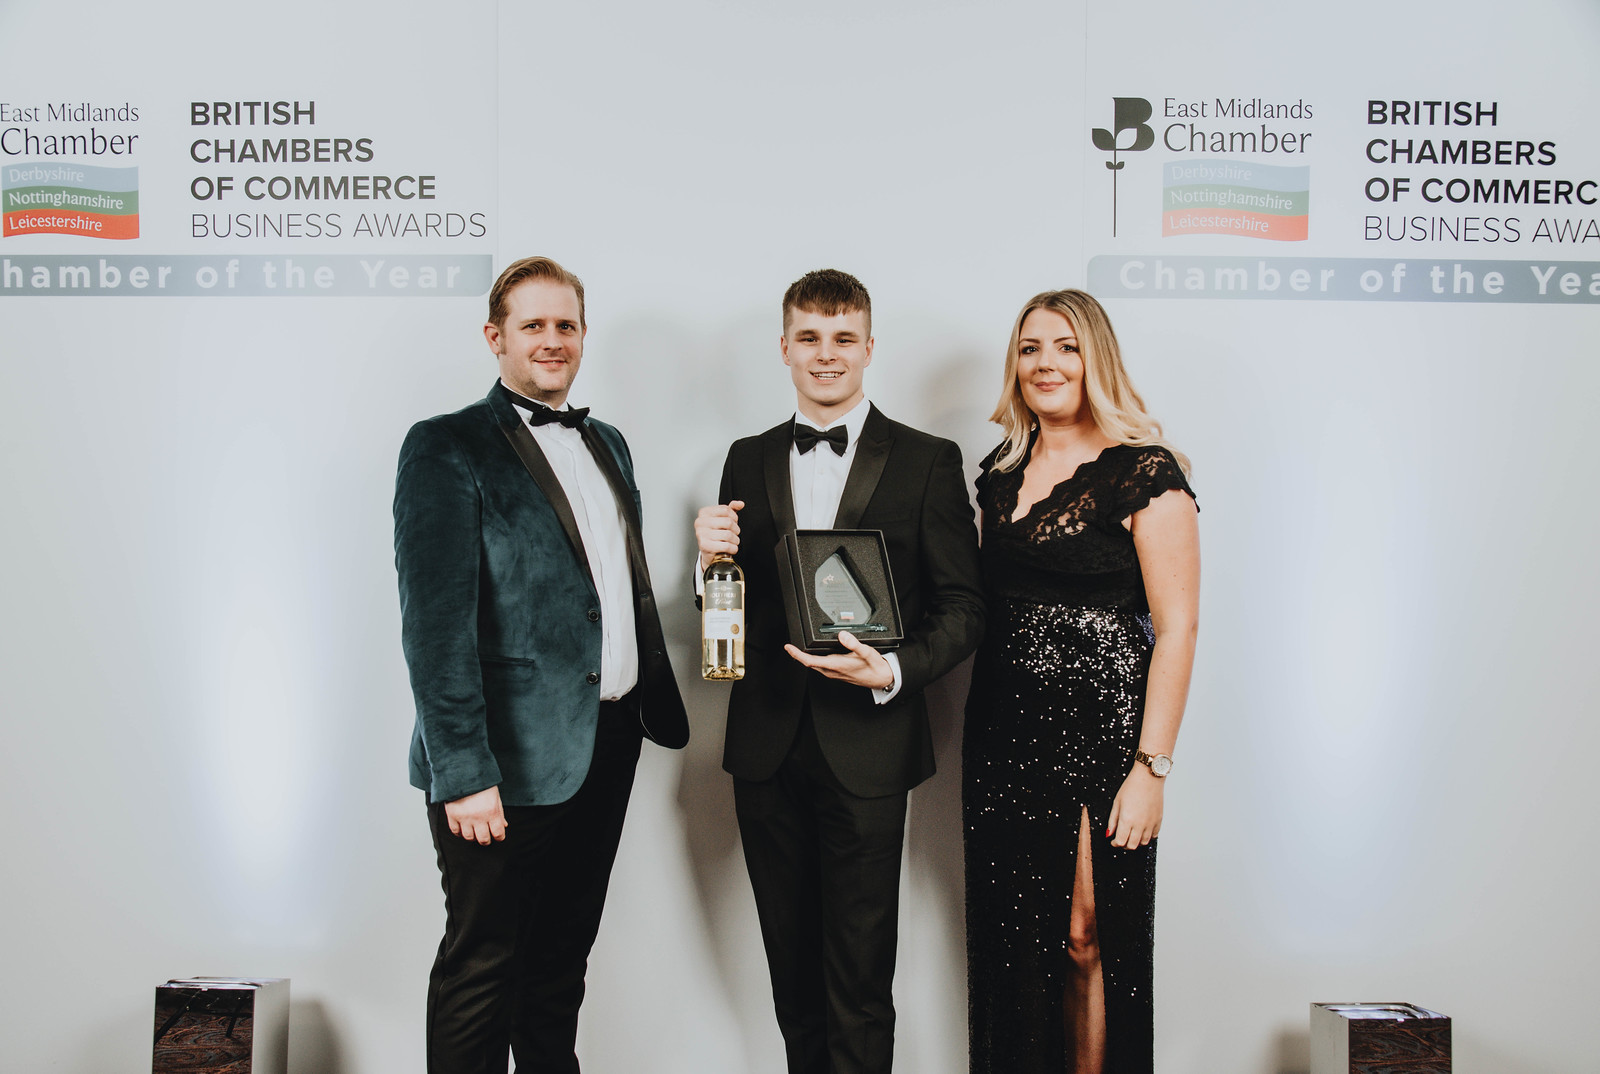 Business Awards Apprentice of the year winner 2019